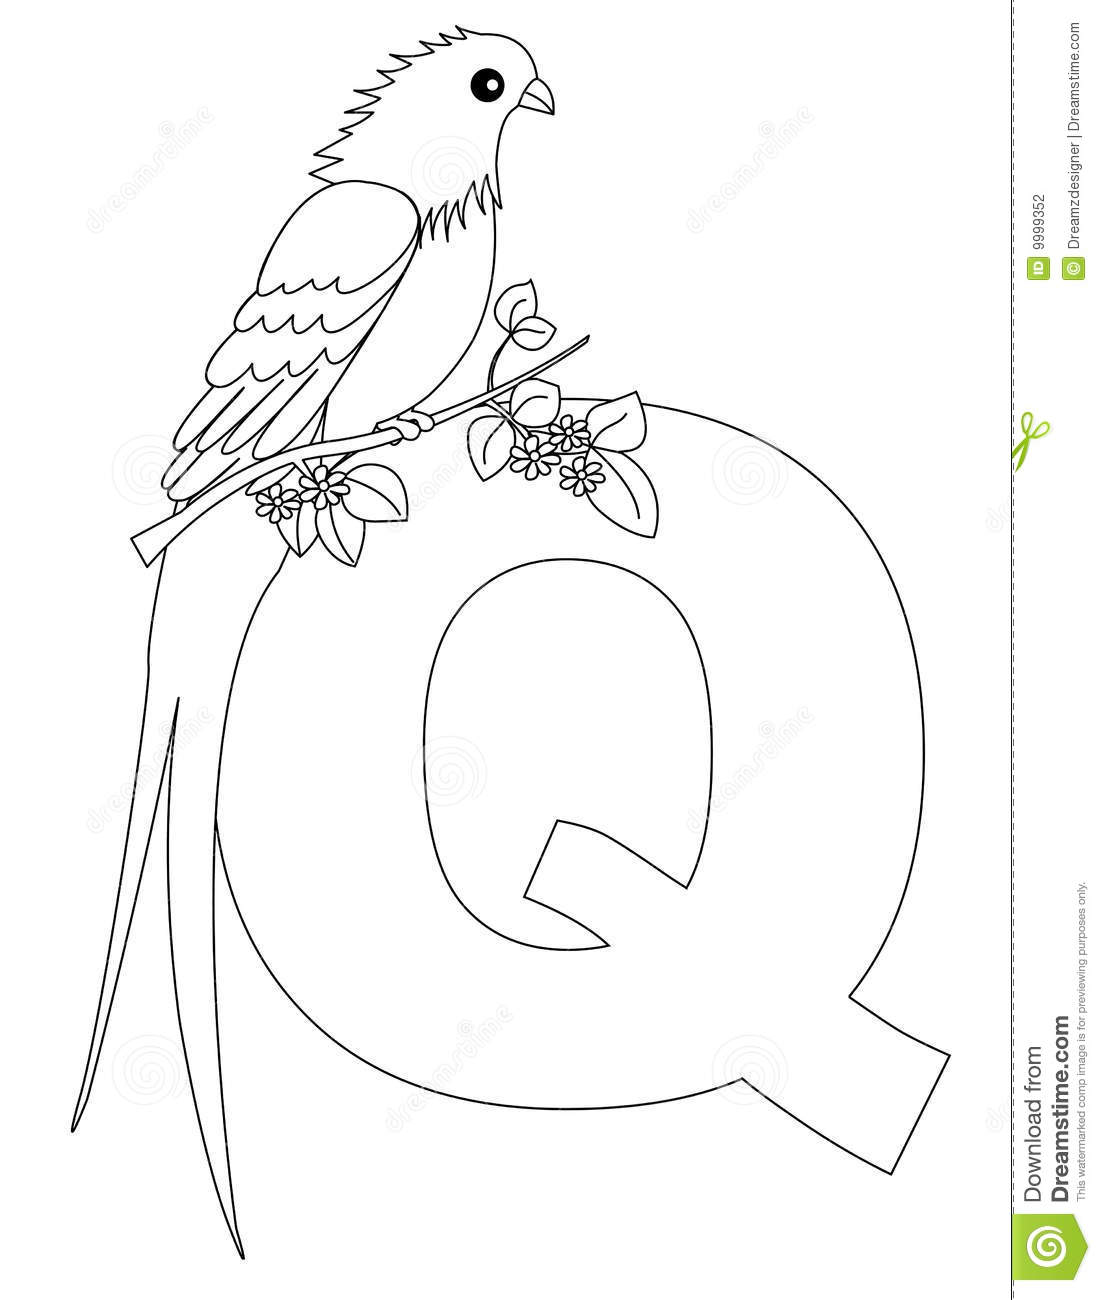 animal alphabet colouring pages animal alphabet colouring pages colouring animal alphabet pages